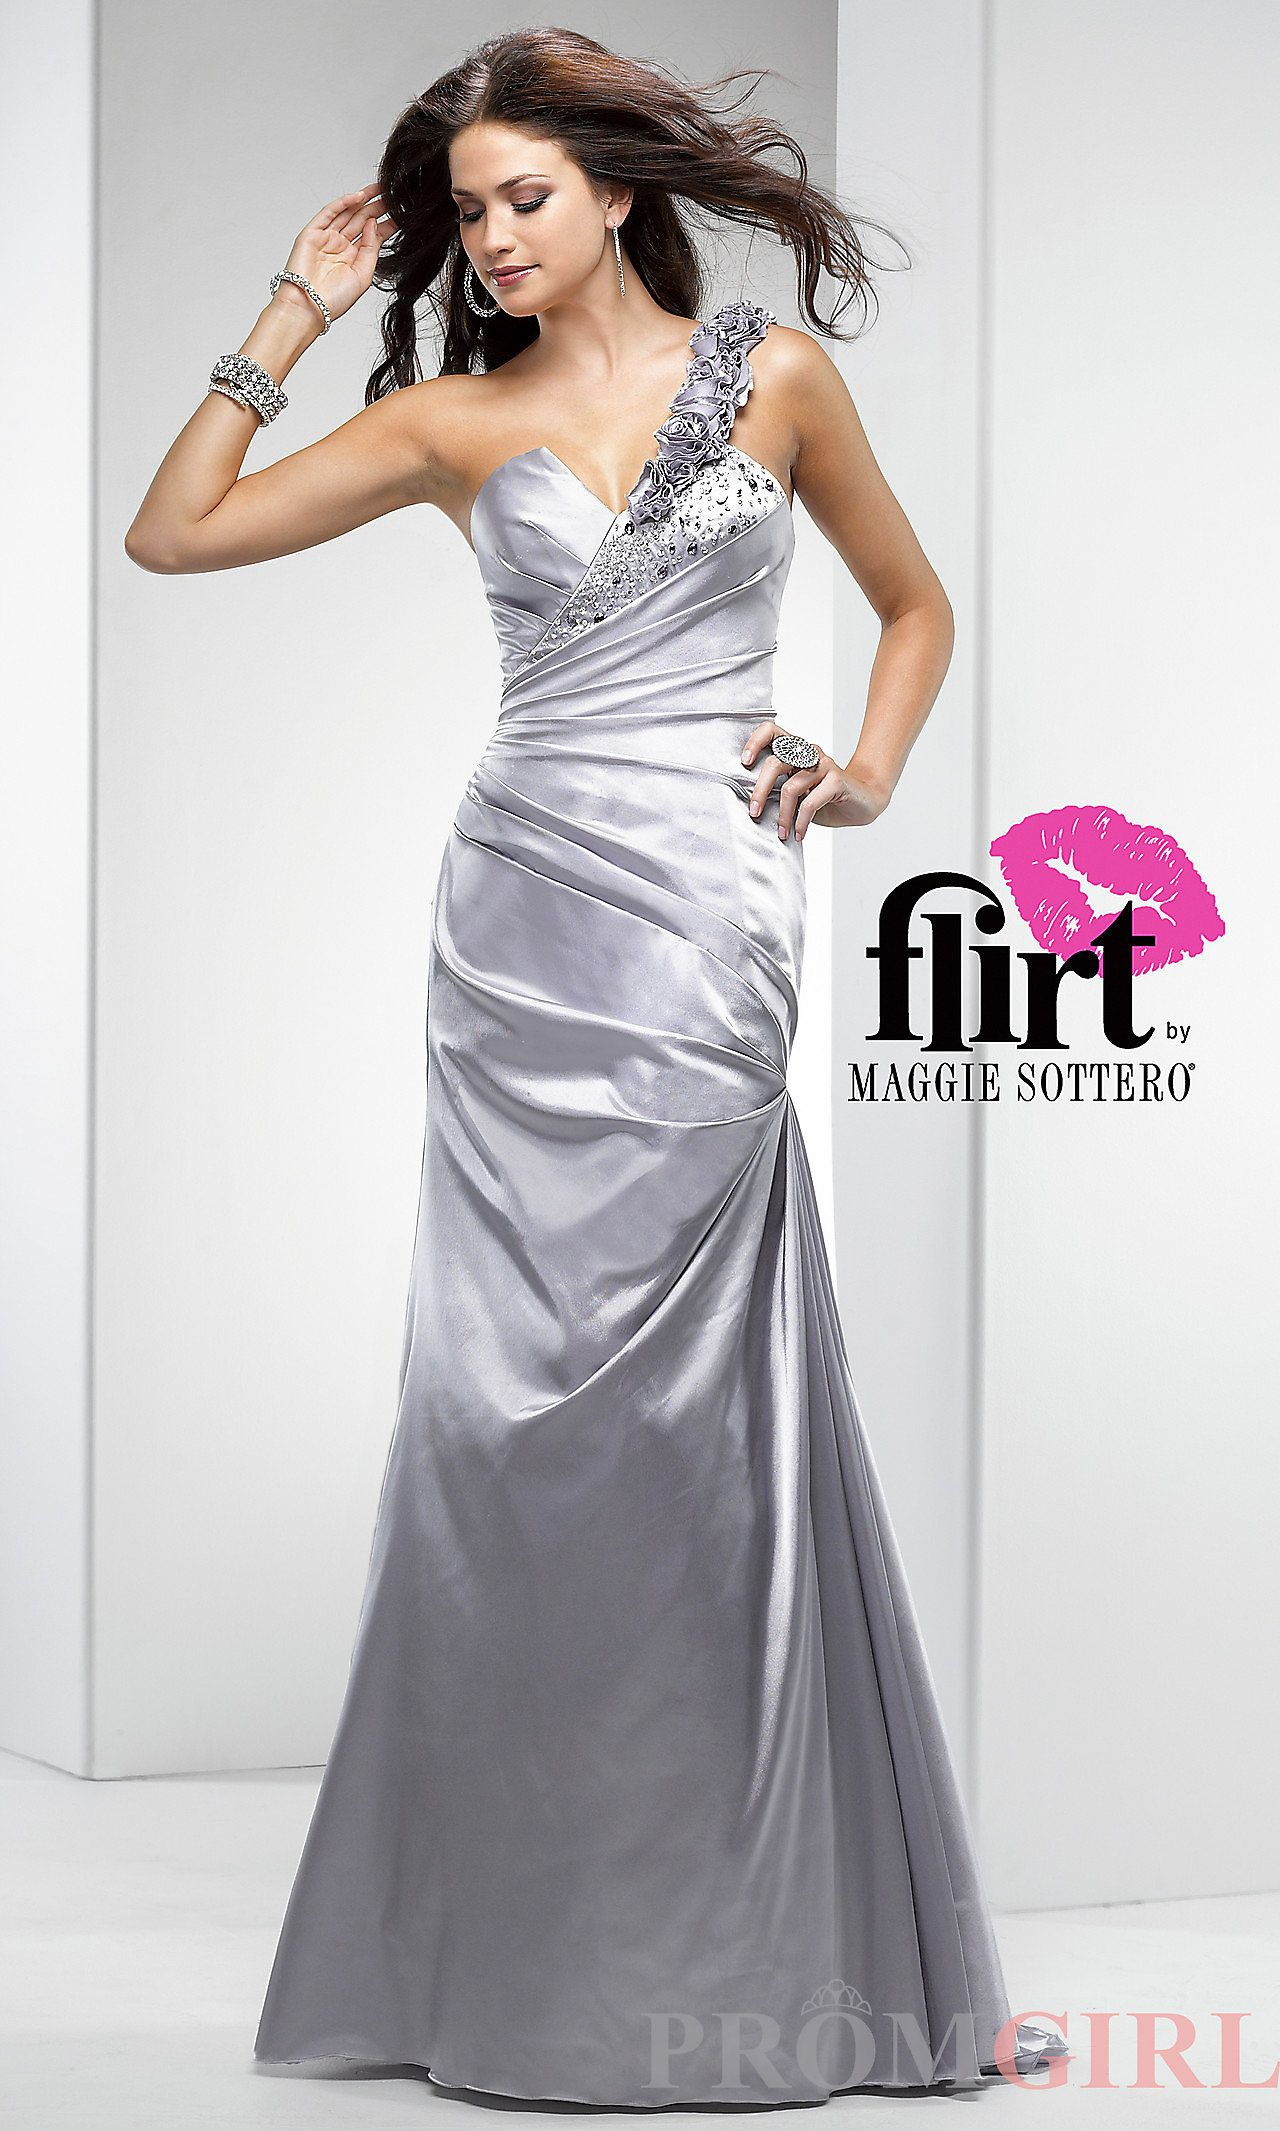 Prom dresses celebrity dresses sexy evening gowns at promgirl one